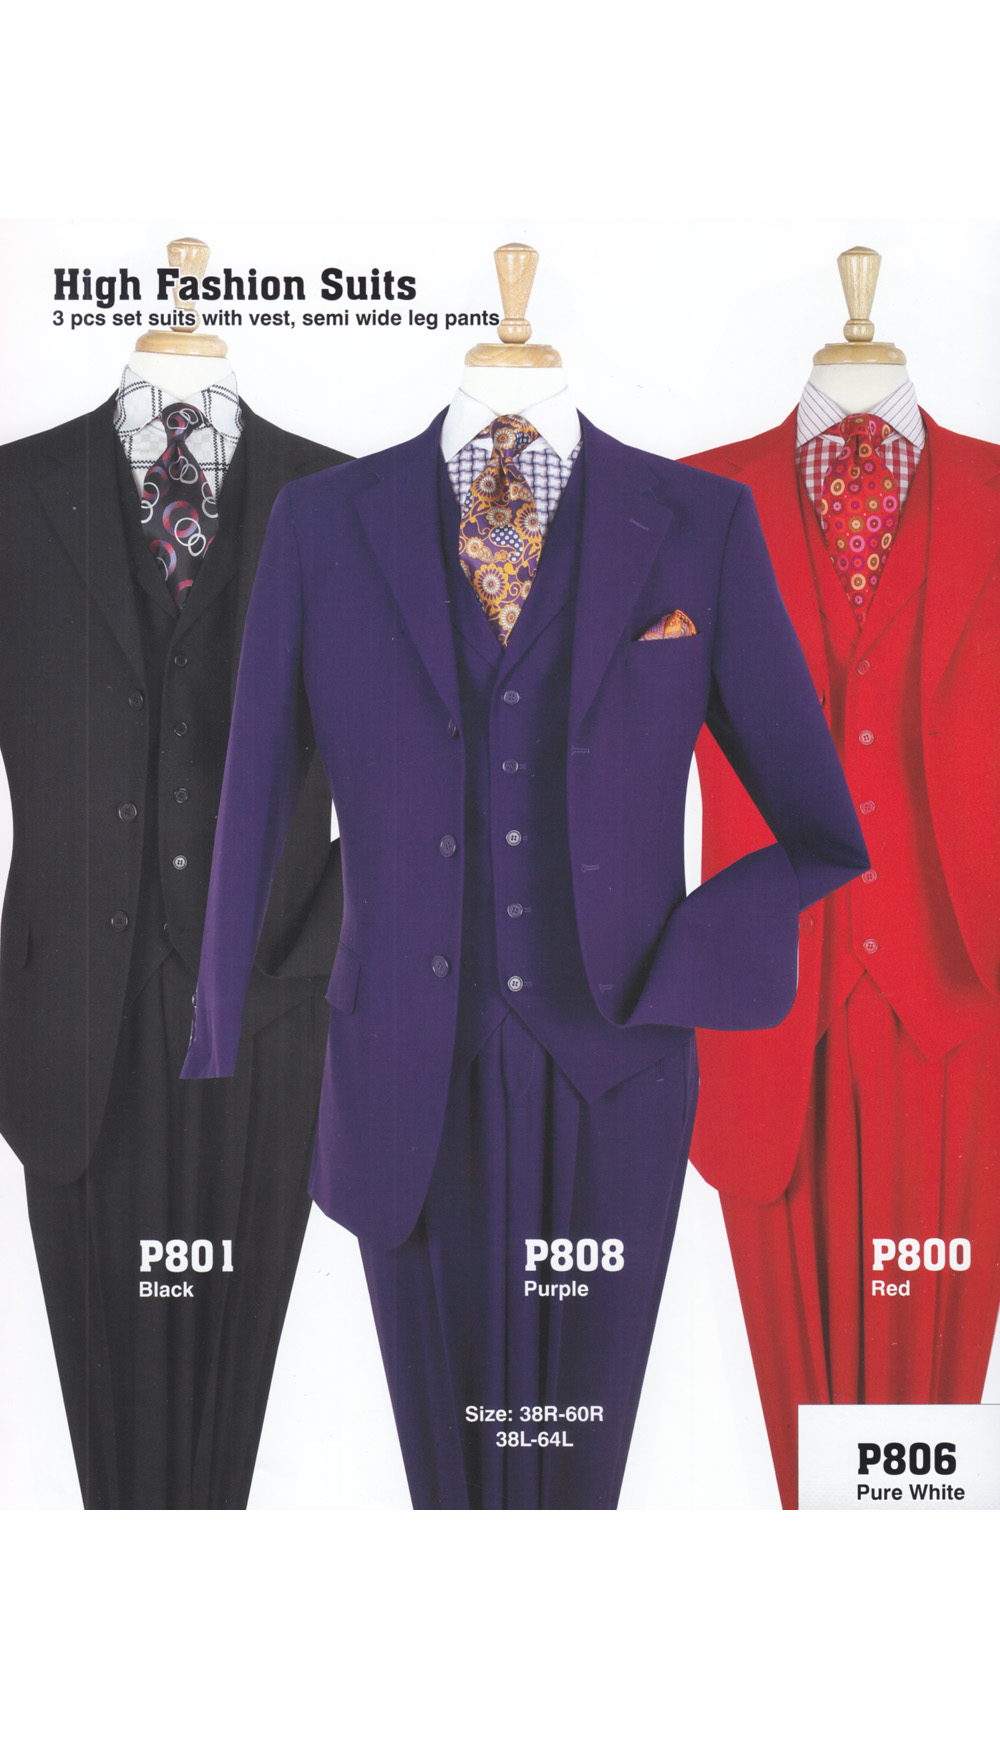 High Fashion Men Suits P808